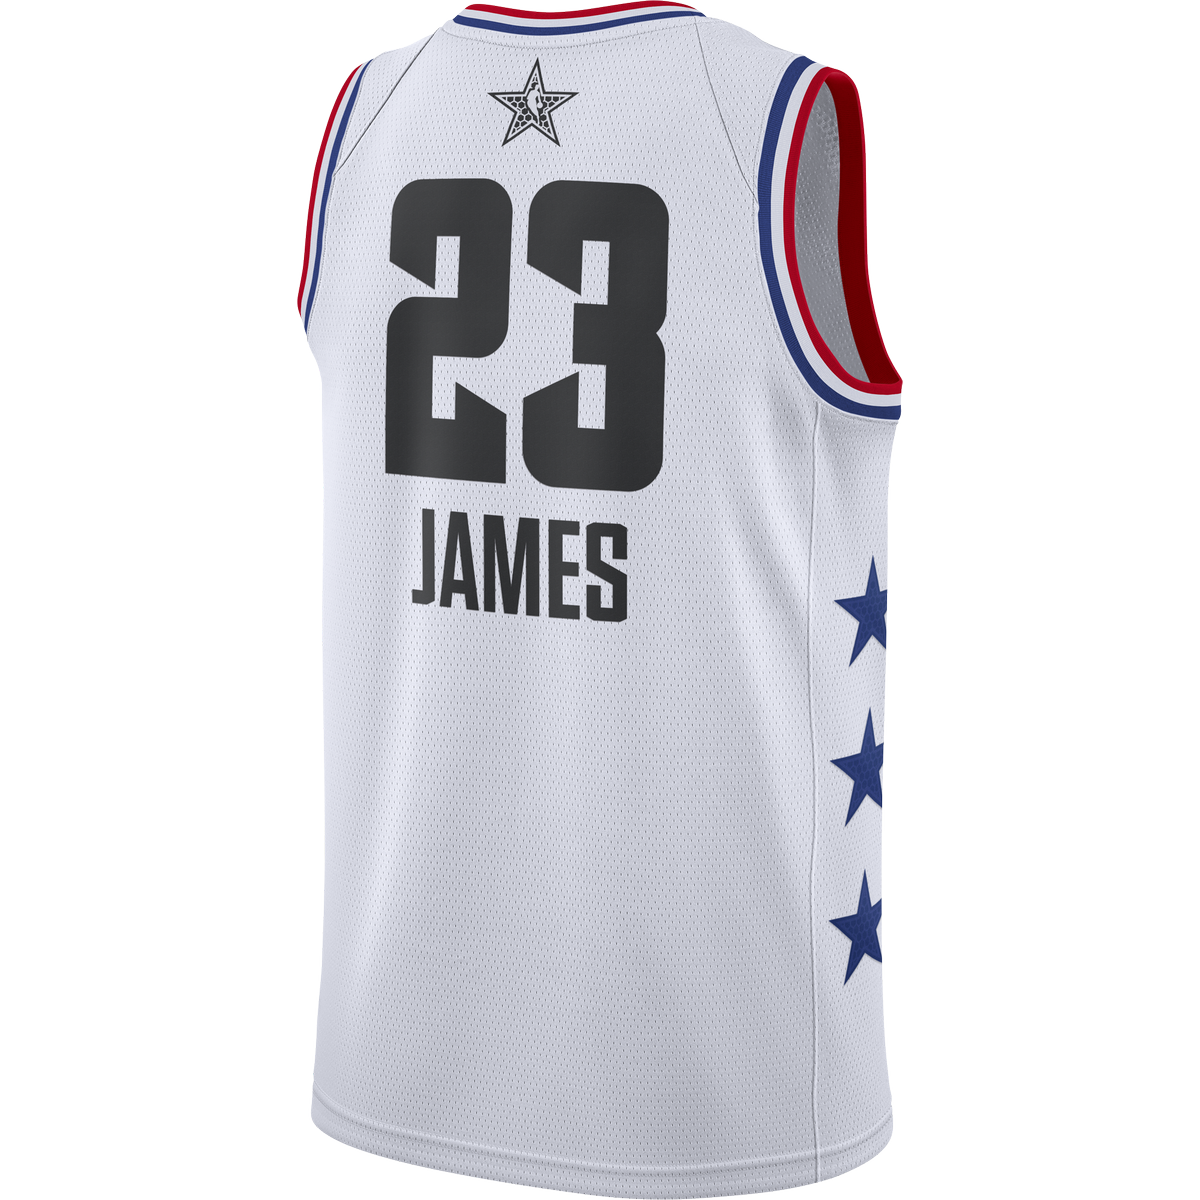 e03498c8d34 LeBron James 2019 All-Star Game Nike Swingman Jersey for  119.99 Fanatics